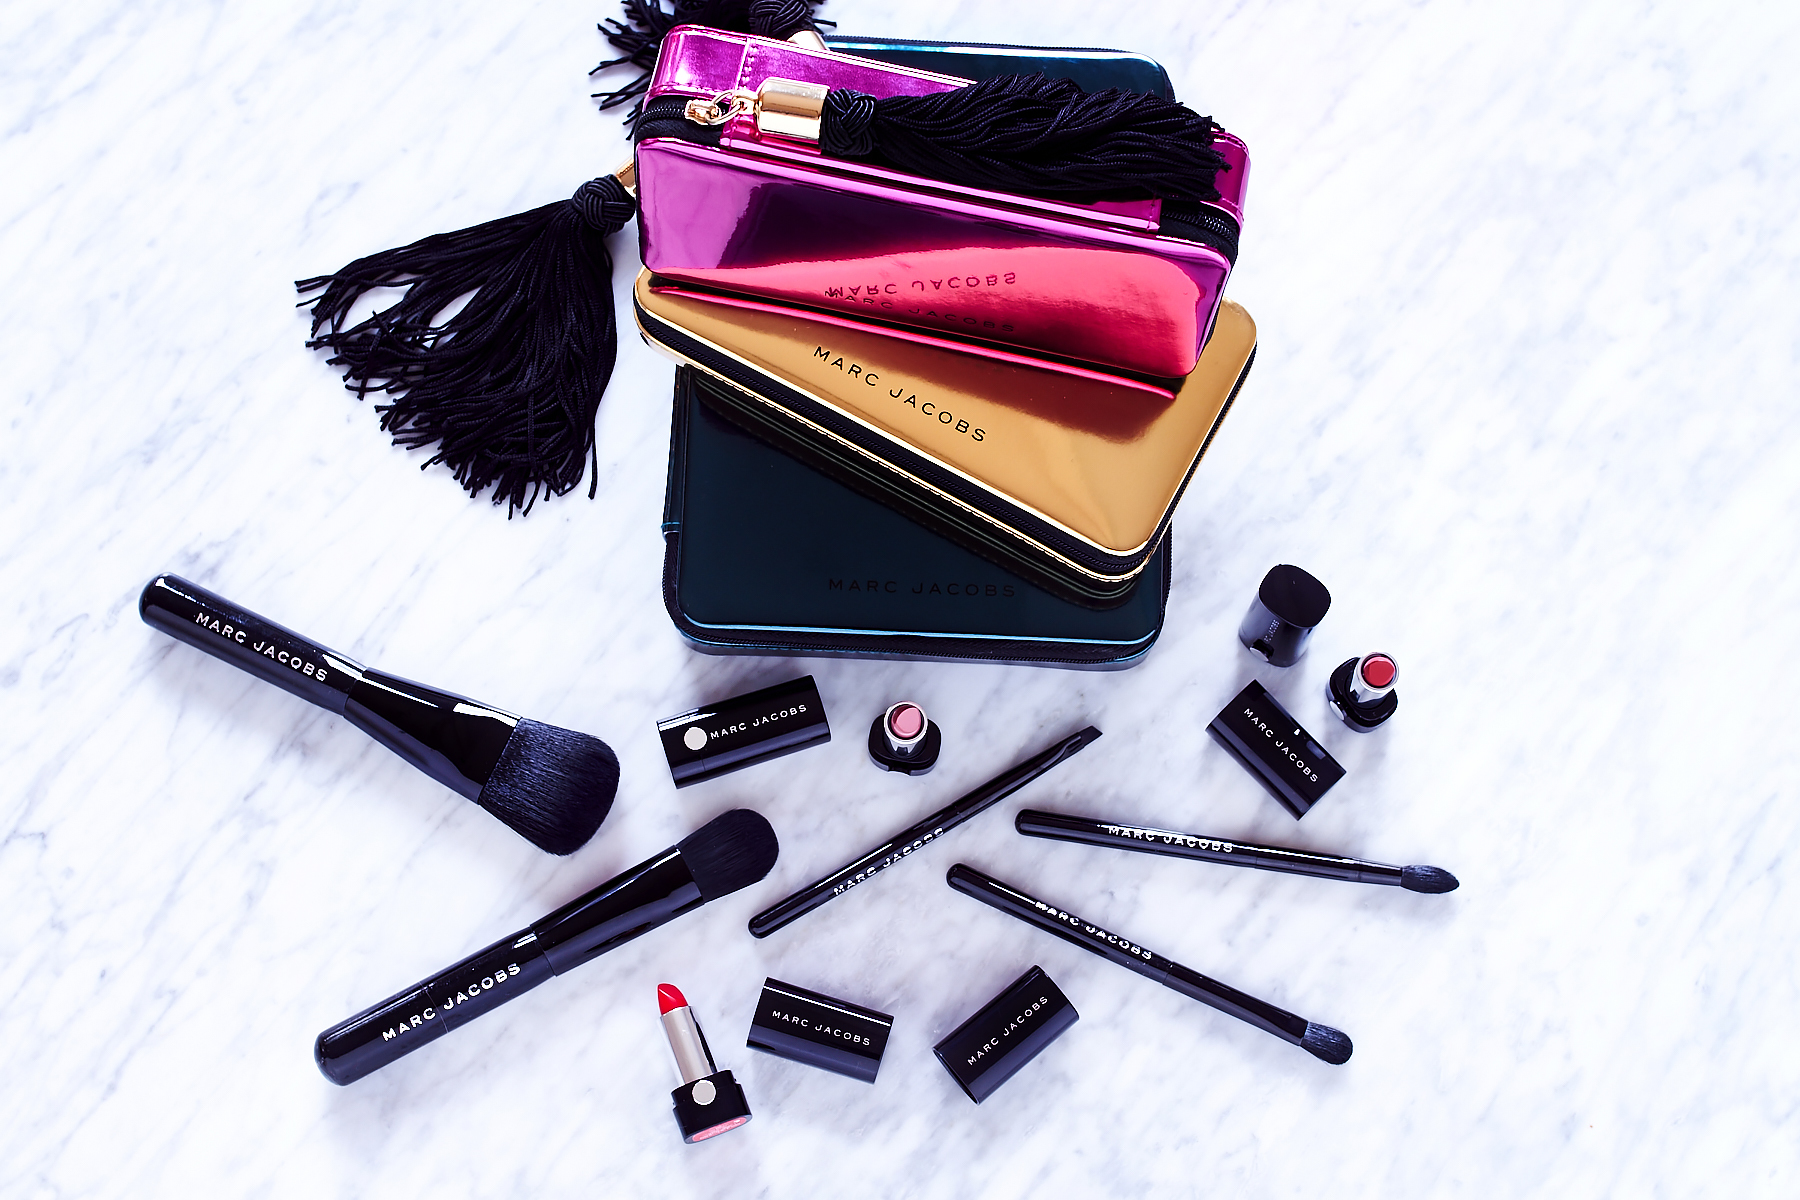 Marc Jacobs Lipstick, Marc Jacobs Makeup Brushes, Beauty